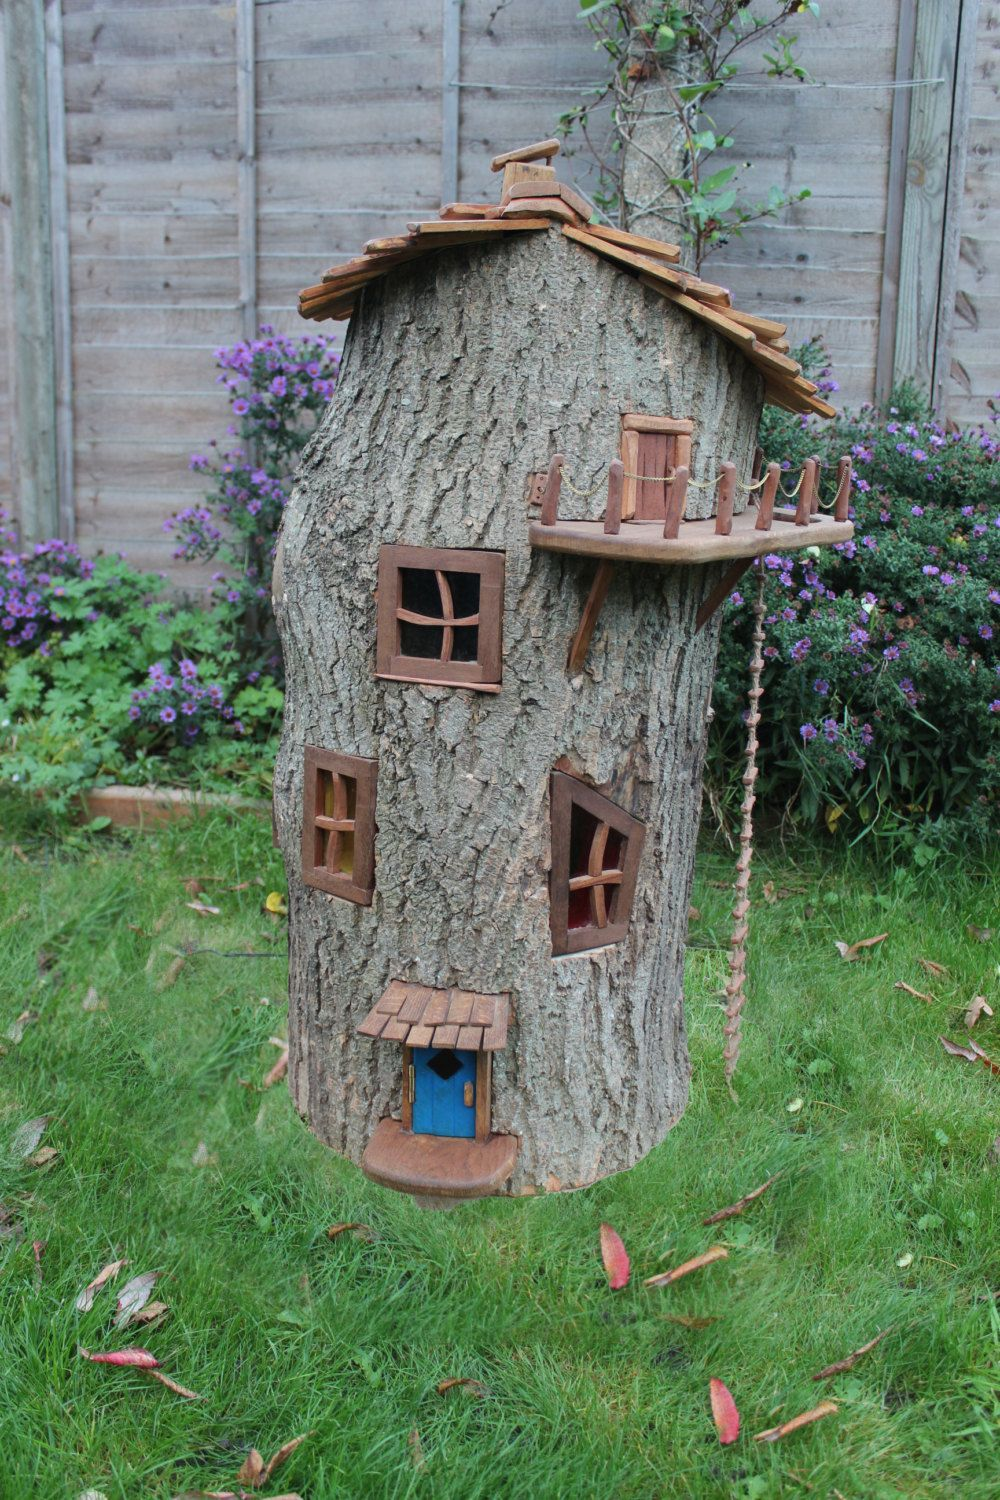 Gnome Tree Stump Home: Enchanted Wooden Fairy House By Olliewoodswood On Etsy